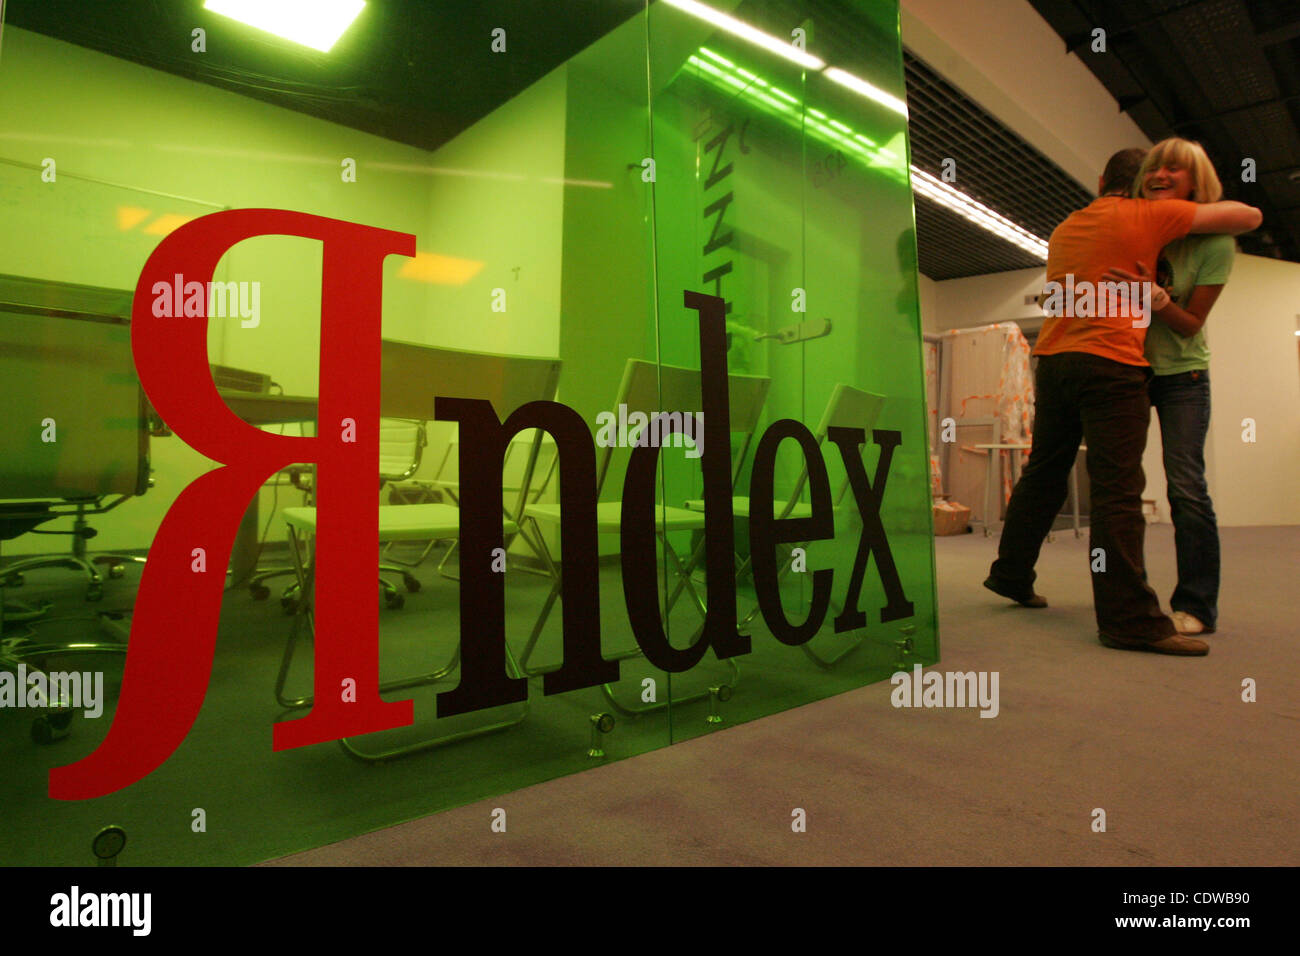 Yandex, the search engine that claims 64 percent of the